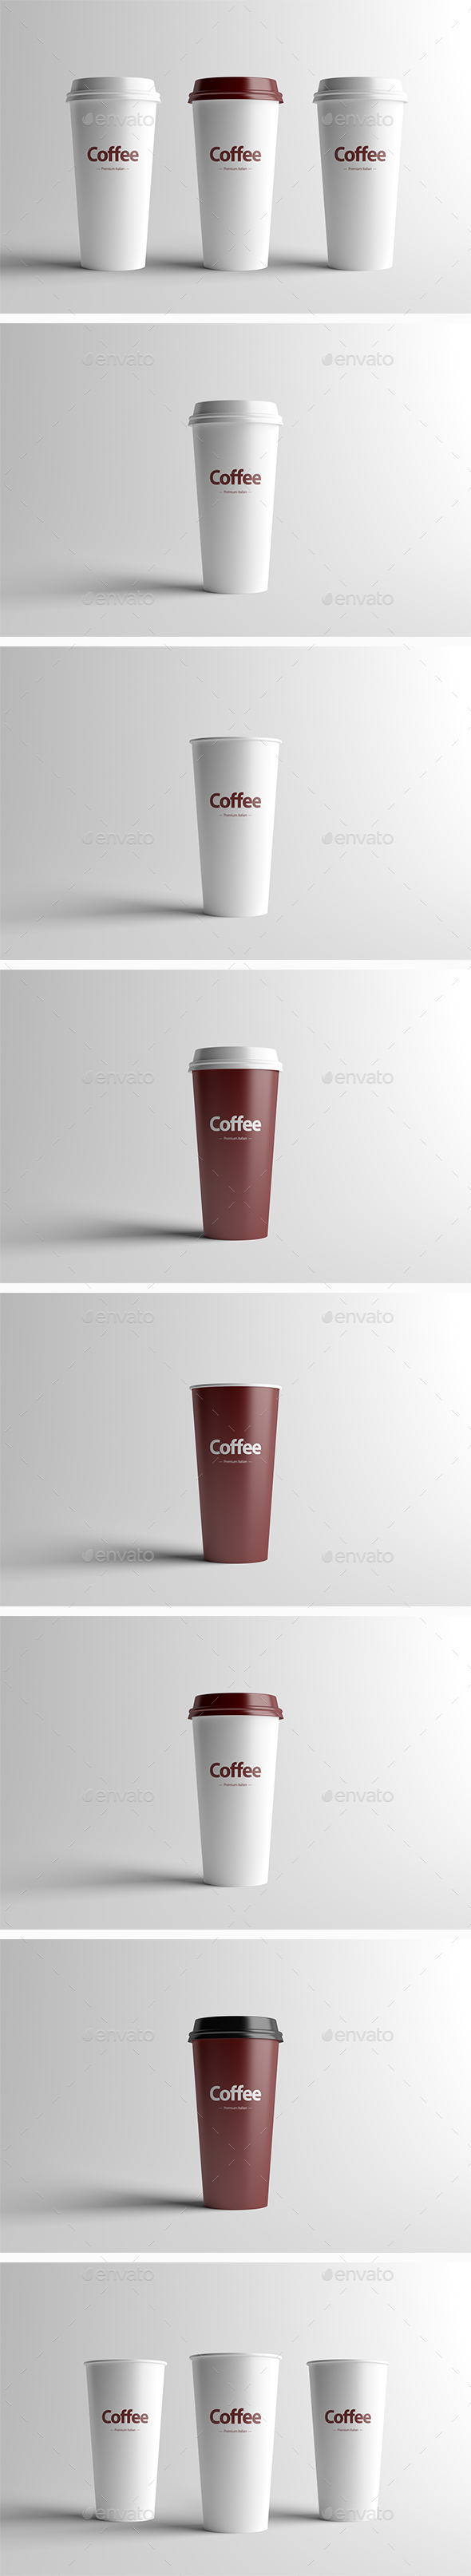 Paper Coffee Cup Packaging Mock-Up - Large